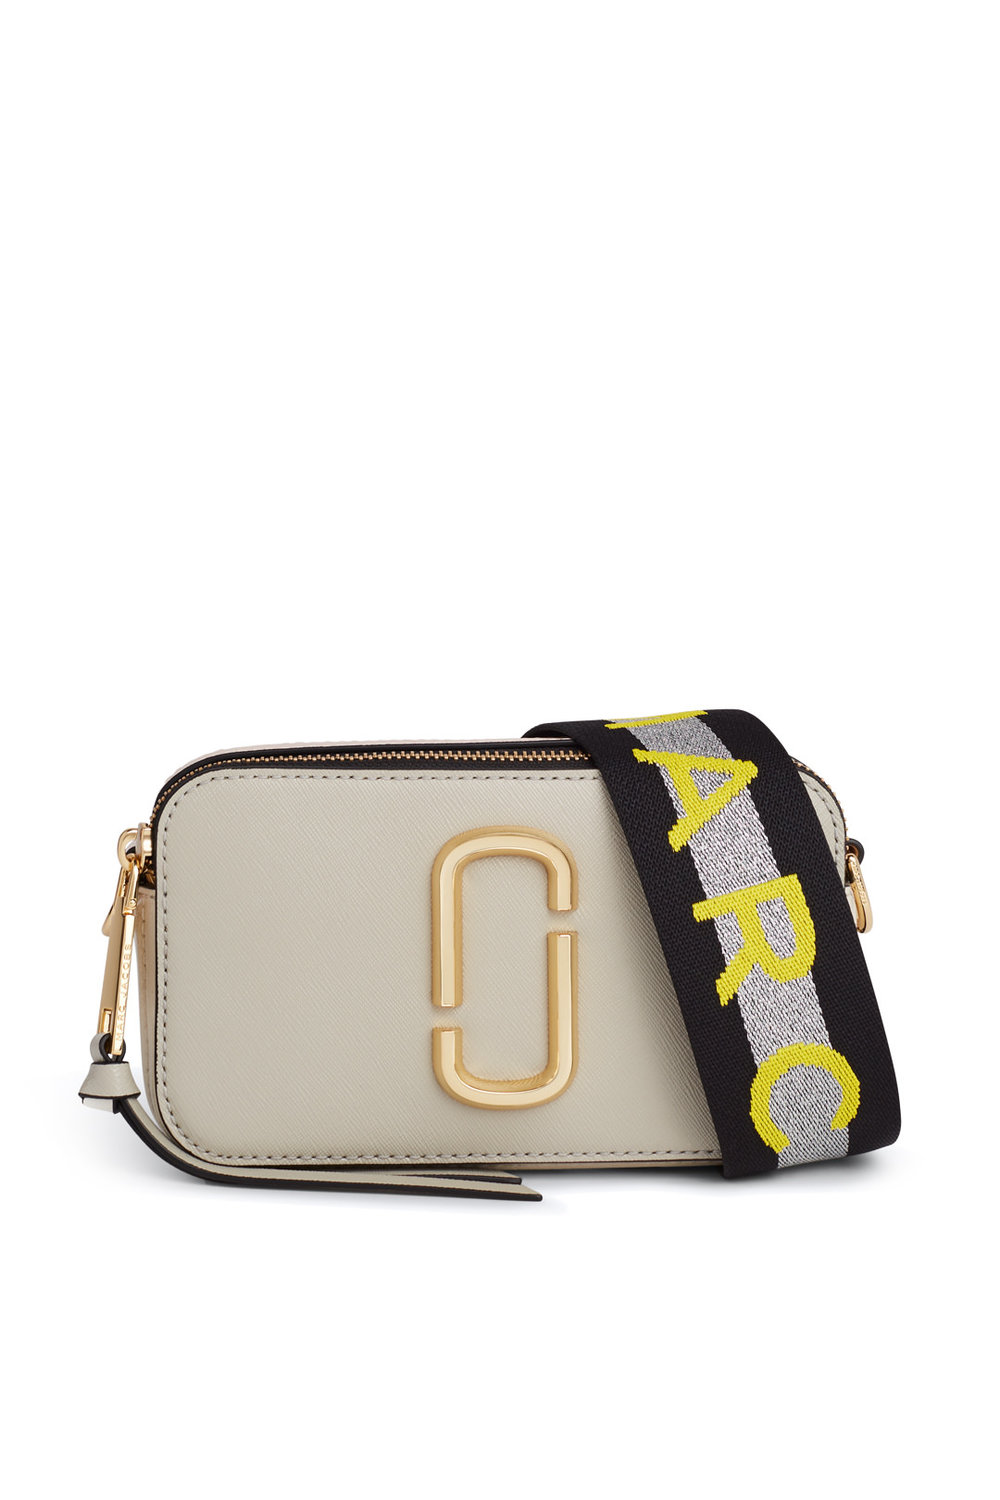 Marc Jacobs Dust Snapshot Crossbody